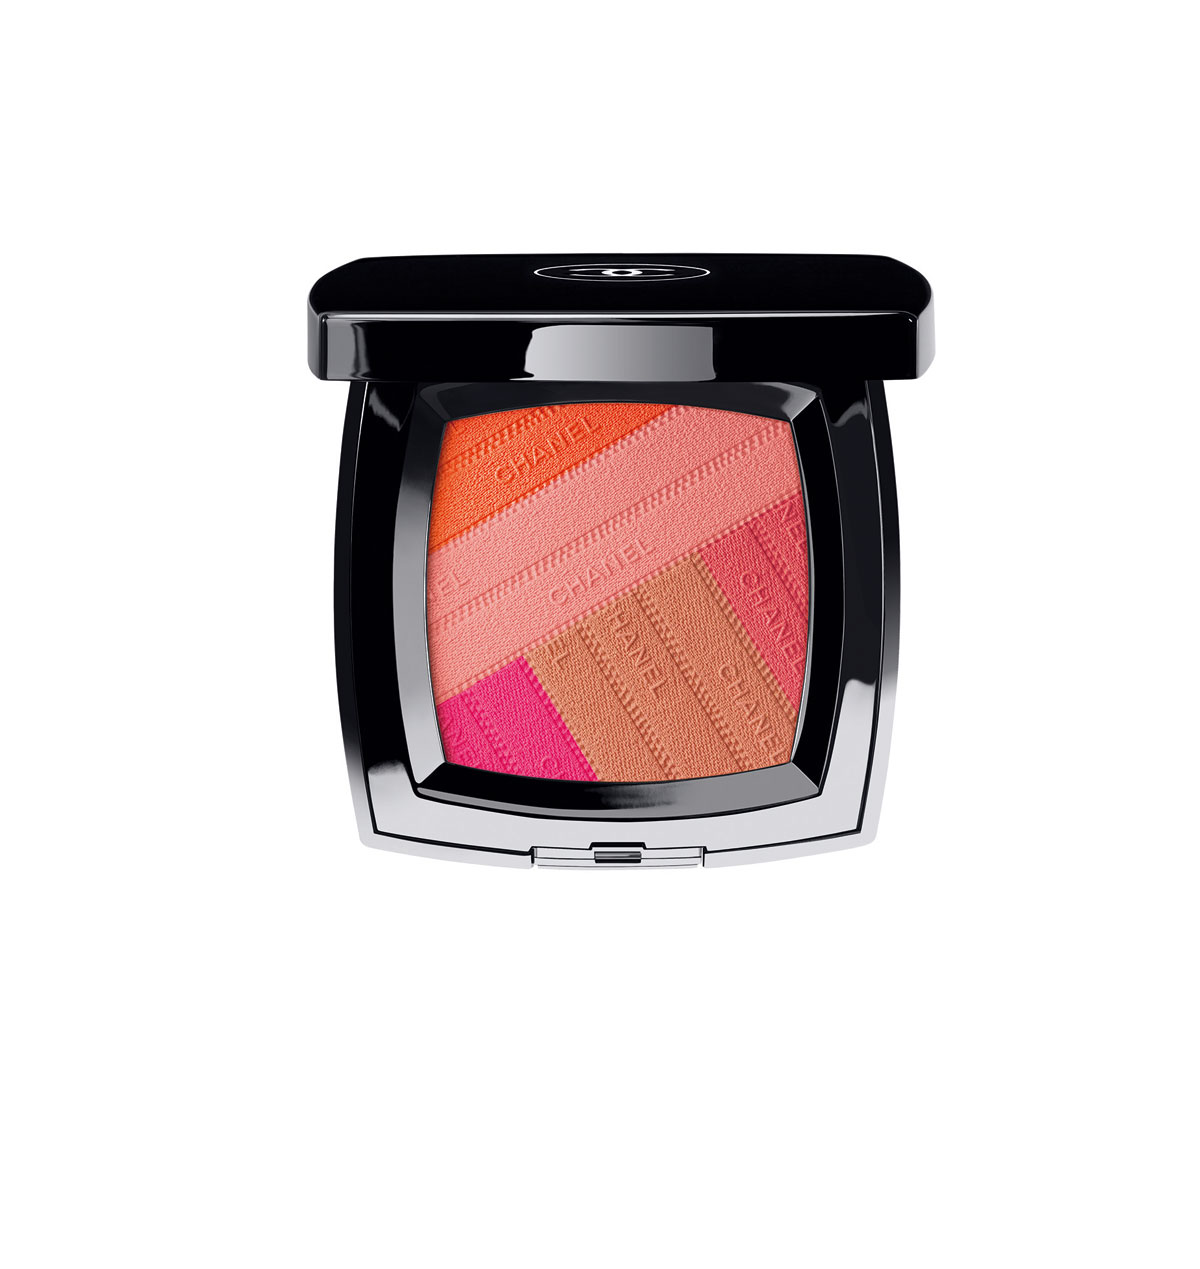 L.A. Sunrise de Chanel (P16). Sunkiss Ribbon (PVPR 57 €)